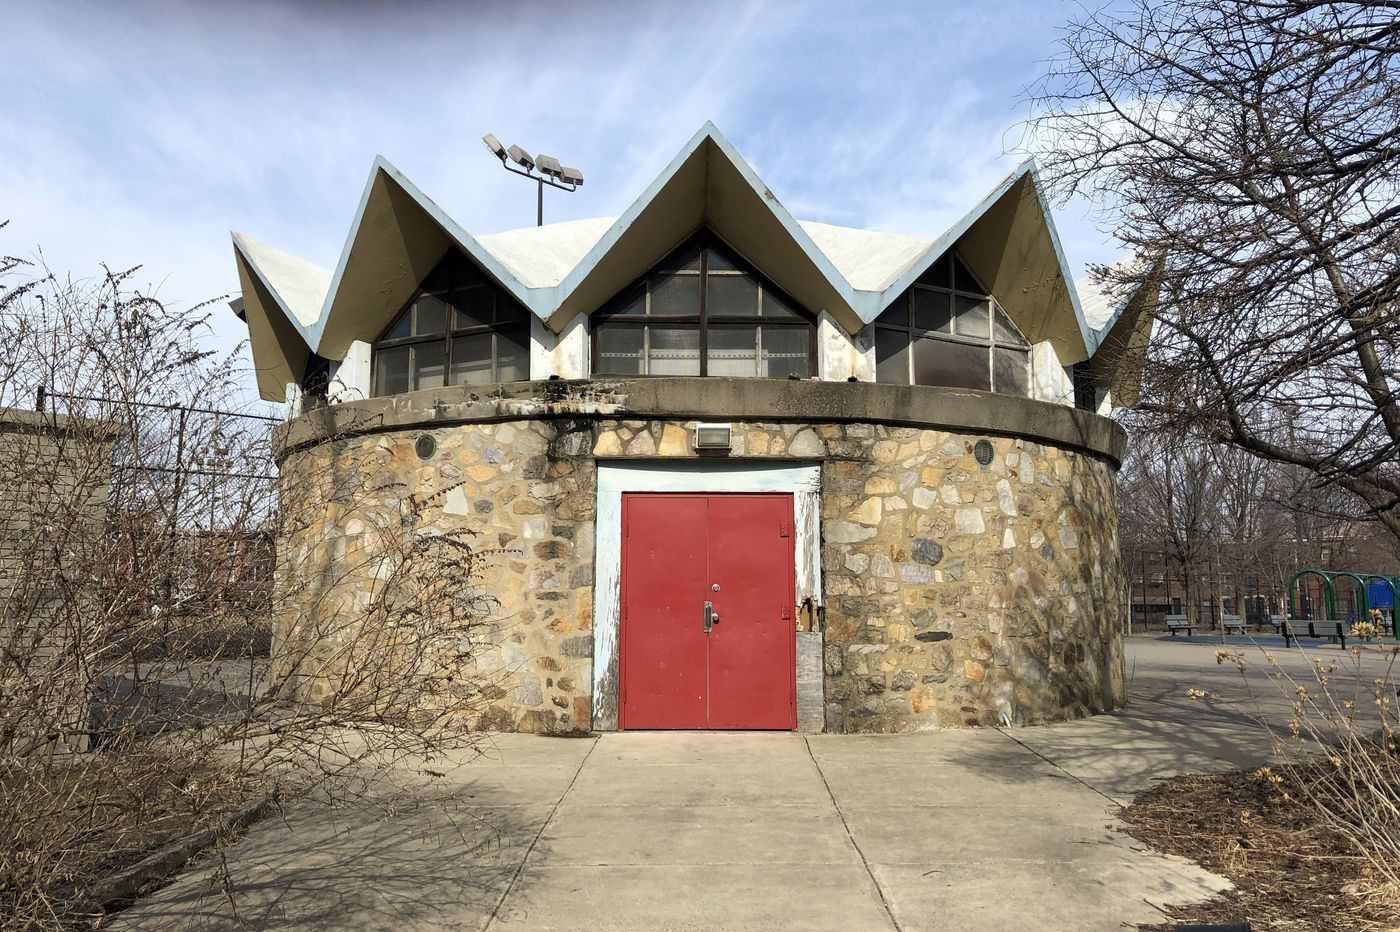 Philly's first licensed female architect built this midcentury modern pavilion in South Philly. Its days are n